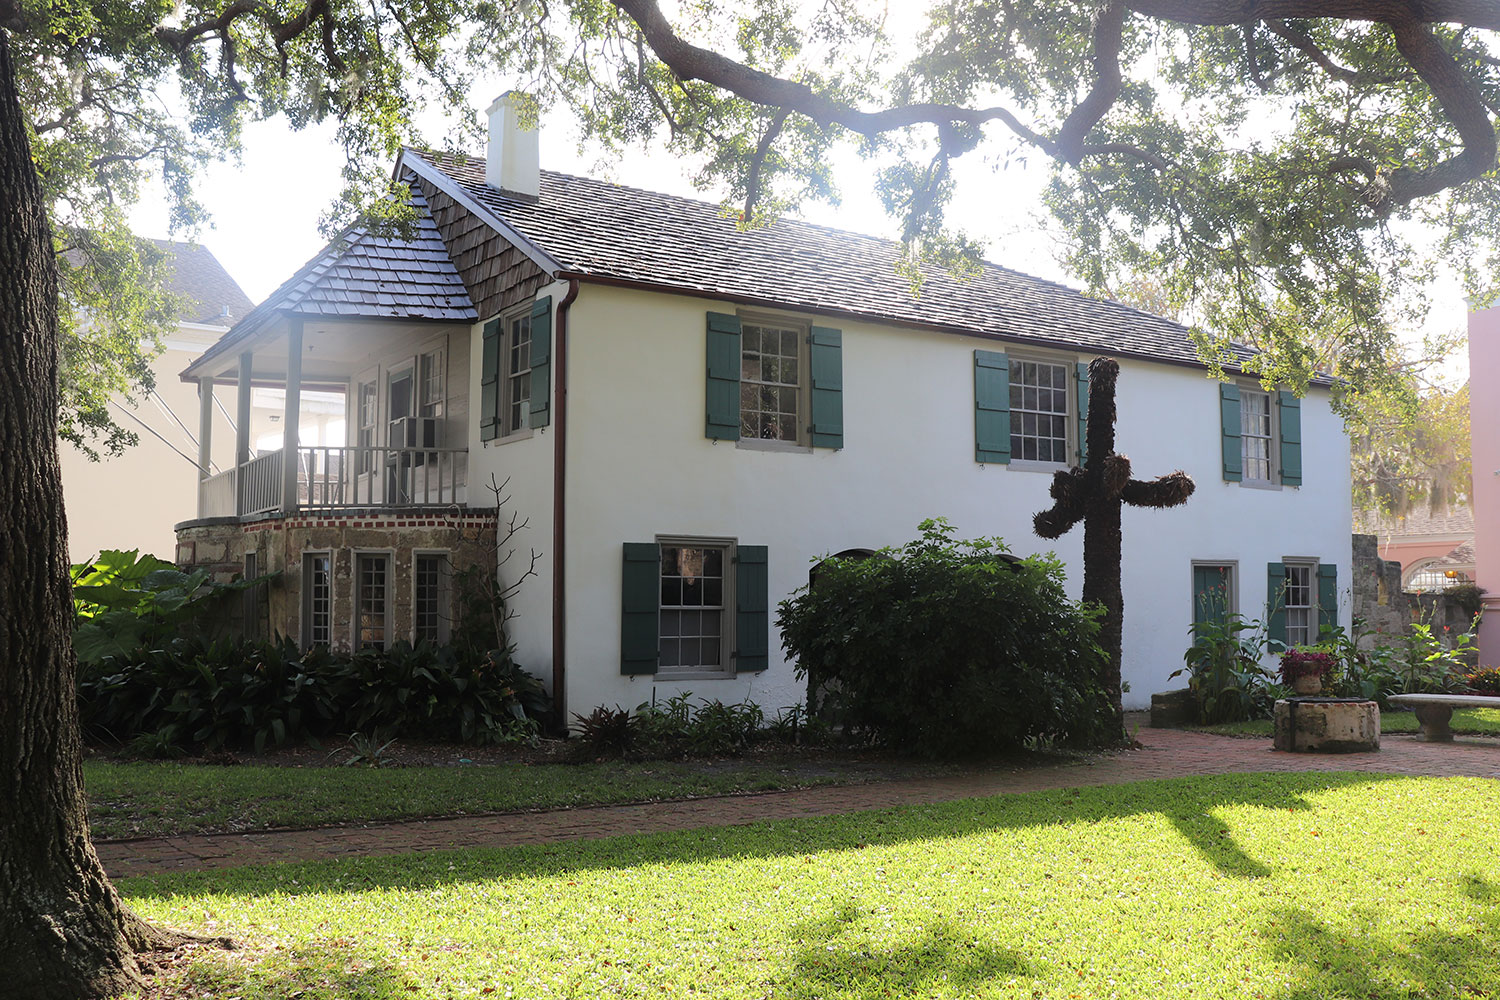 The Gonzalez-Alvarez House in St. Augustine